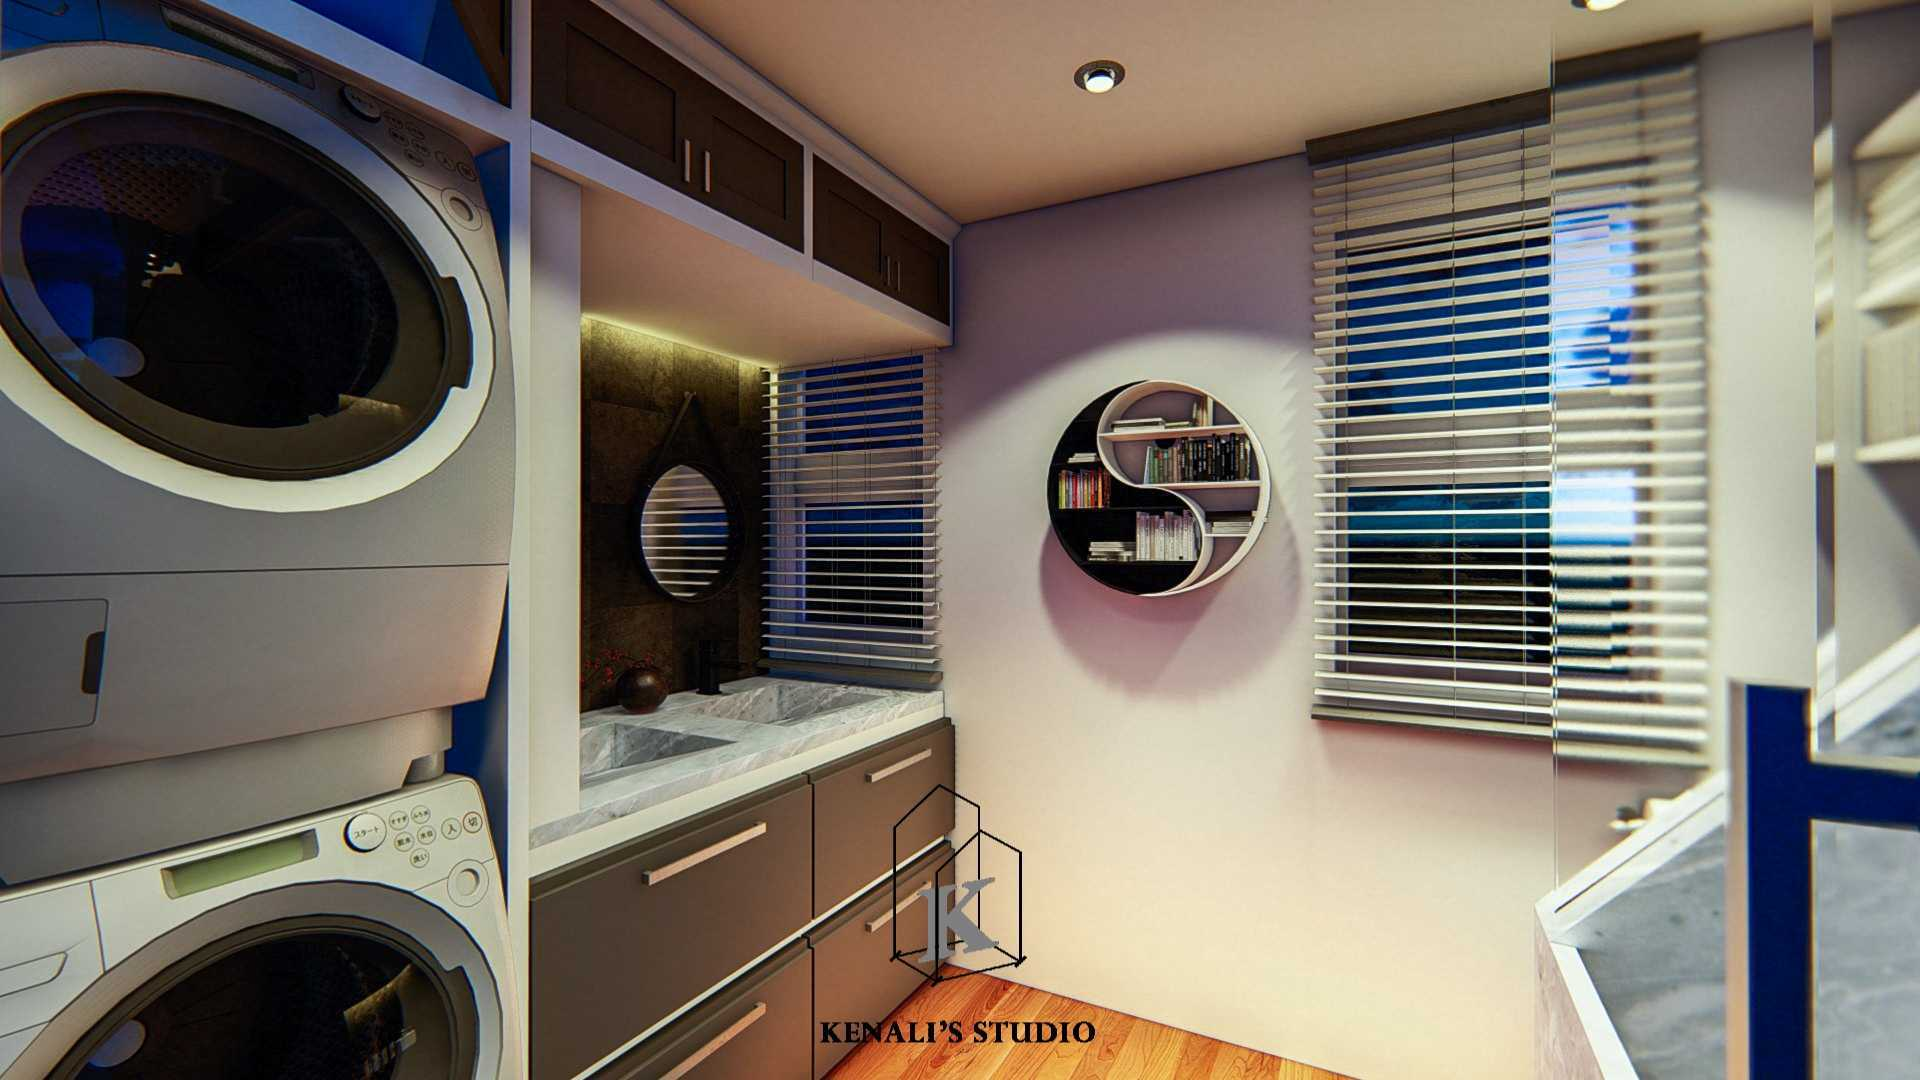 Kenali's Studio Project : Laundry & Bathroom Amerika Serikat Amerika Serikat Kenalis-Studio-Project-Laundry-Bathroom   72917